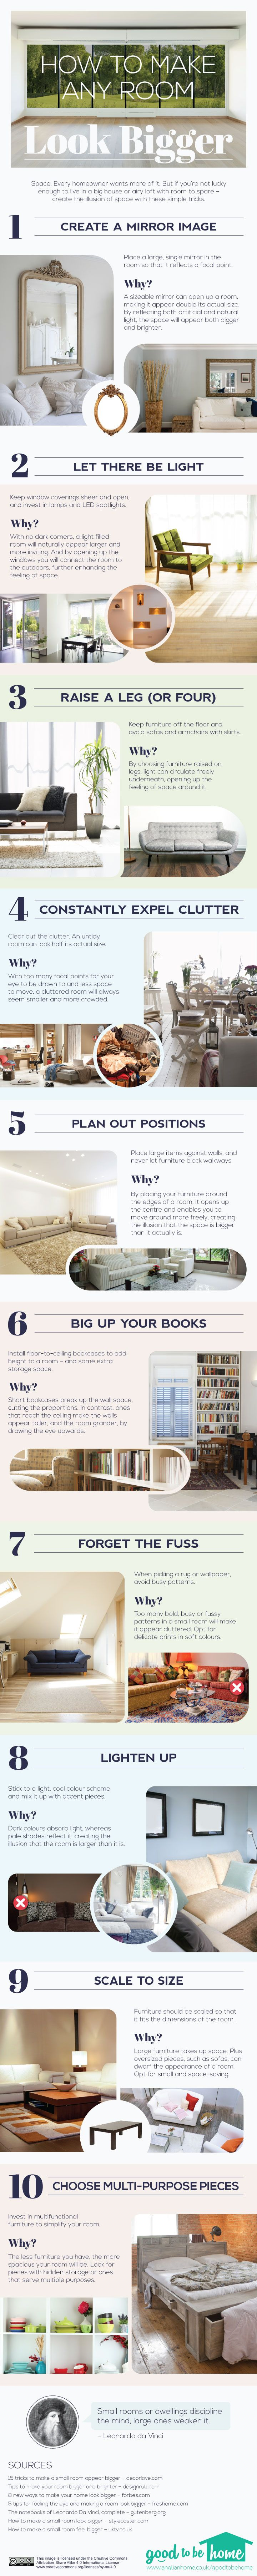 How to make any room look bigger just by painting it the - Infographic How To Make A Small Space Look Bigger